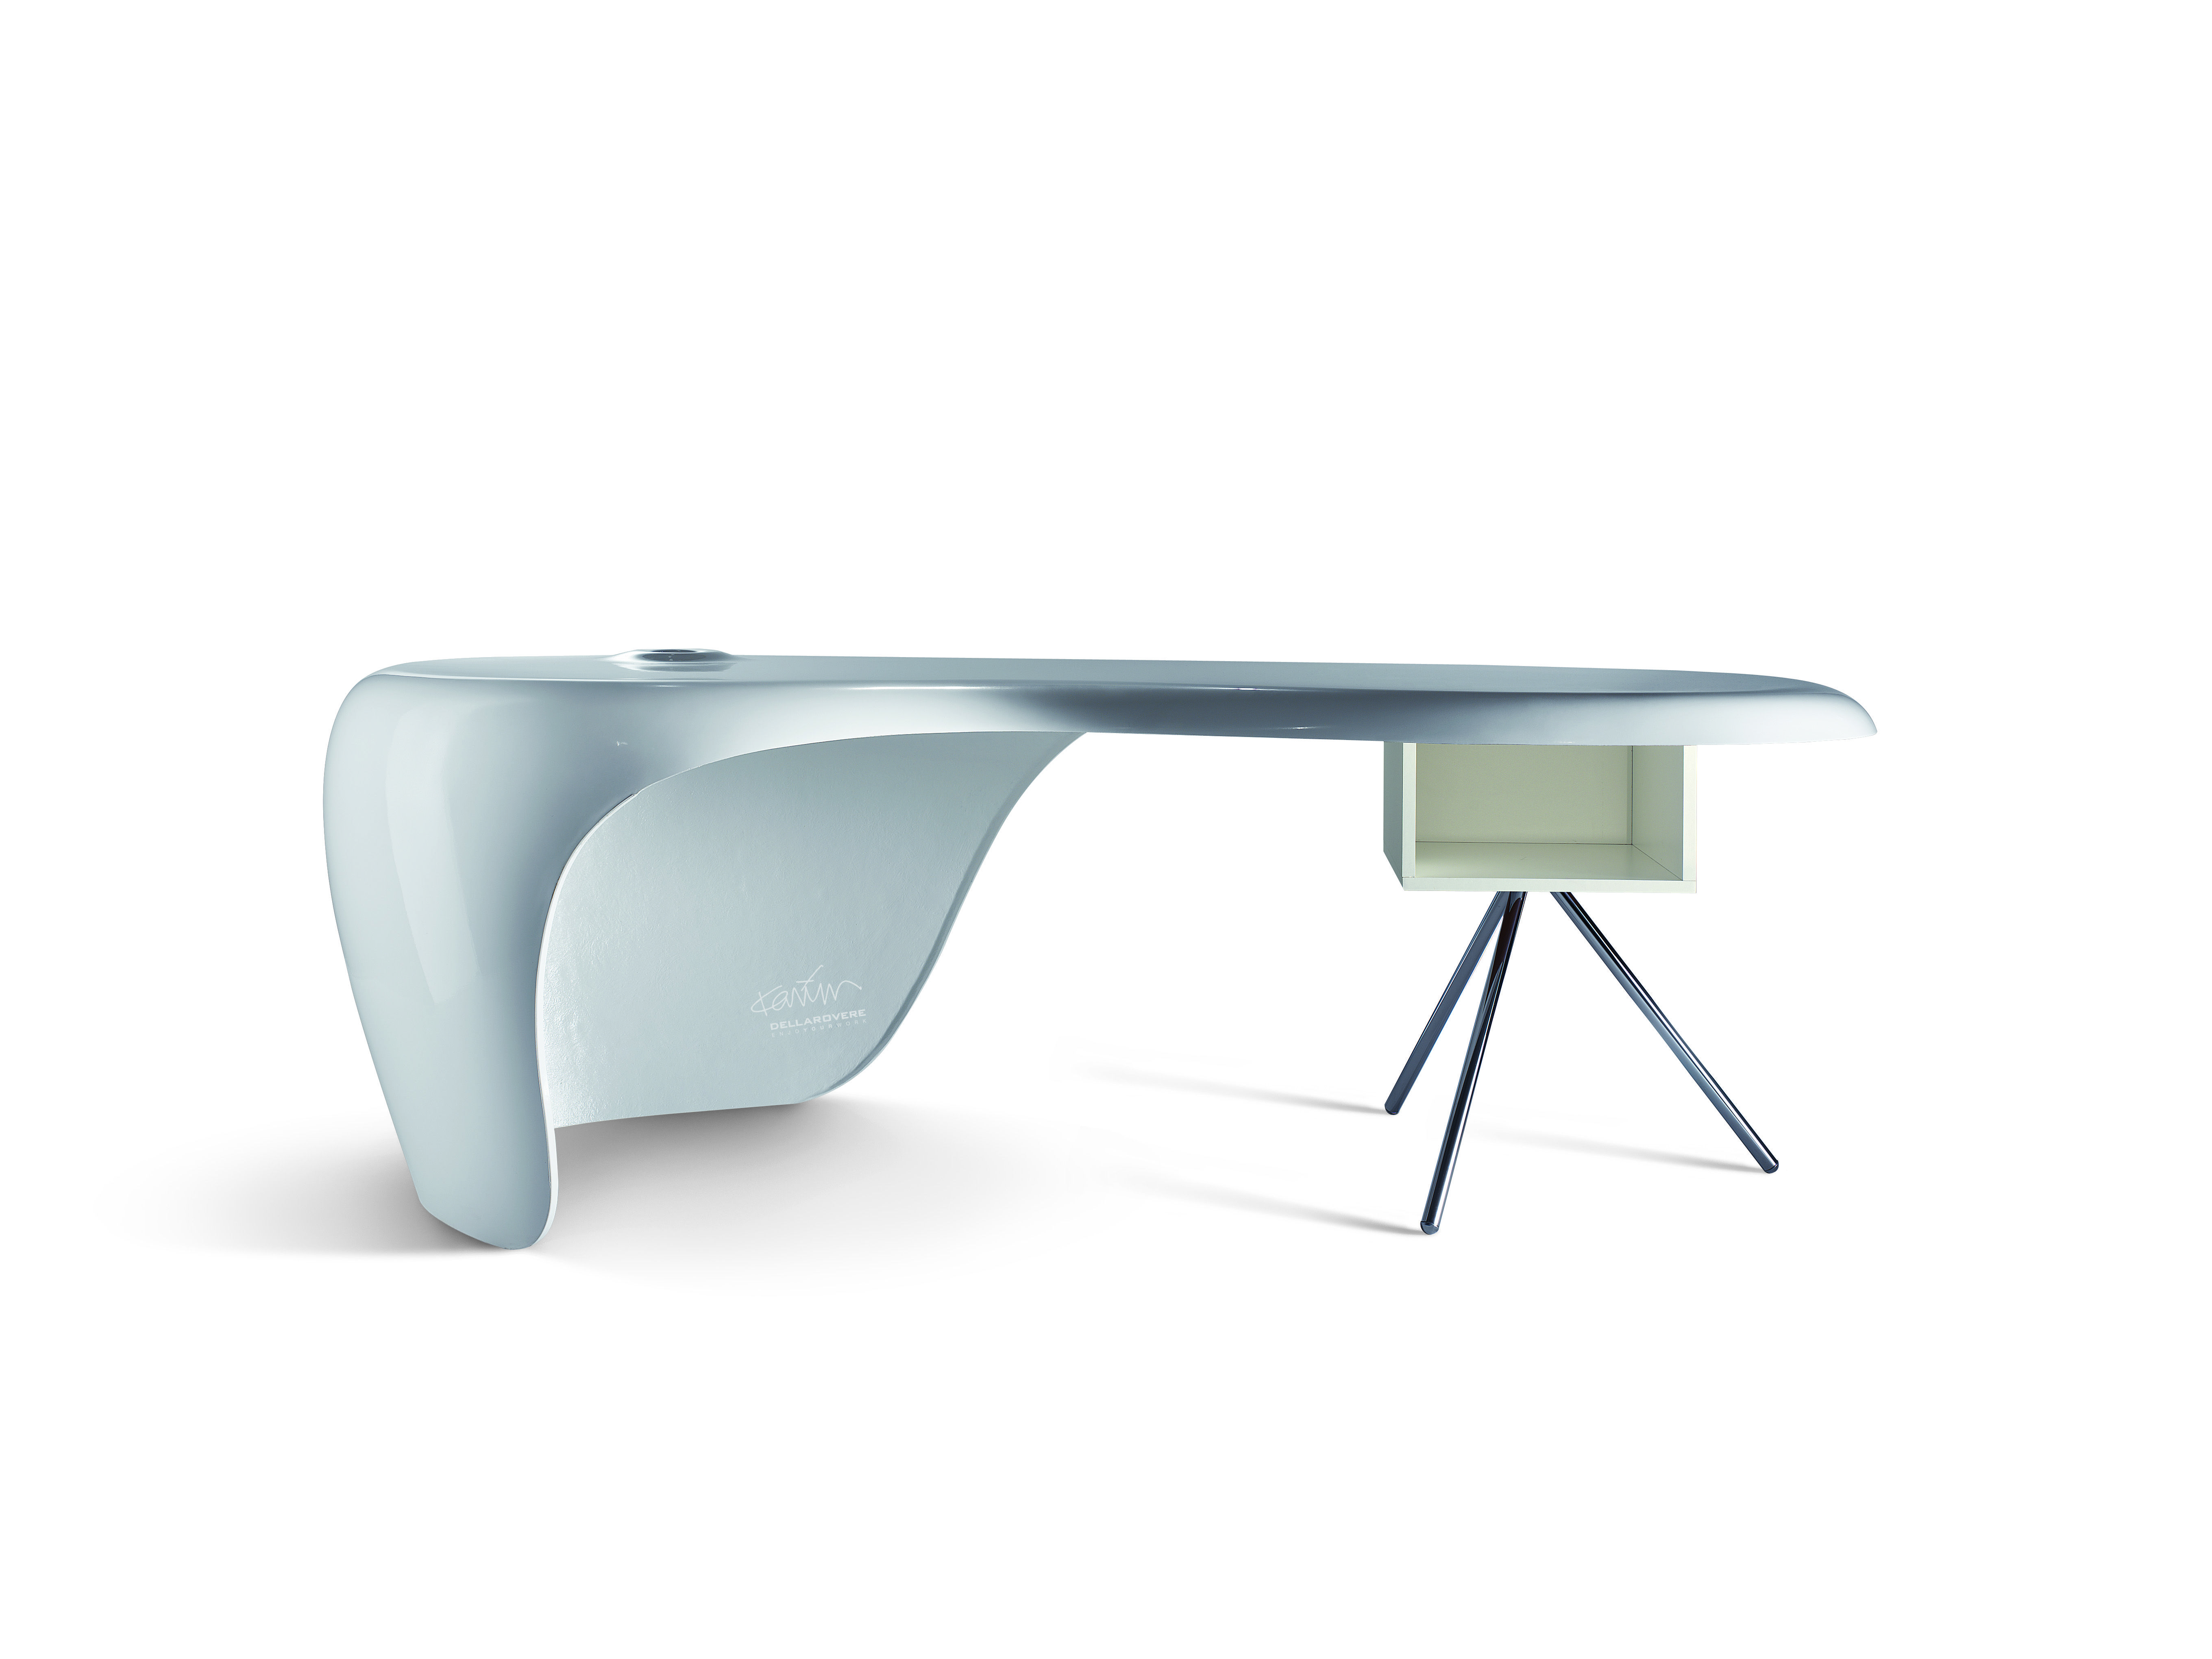 gallery choosing office cabinets white uno desk that can be personalized to your favorite image03 home8 home